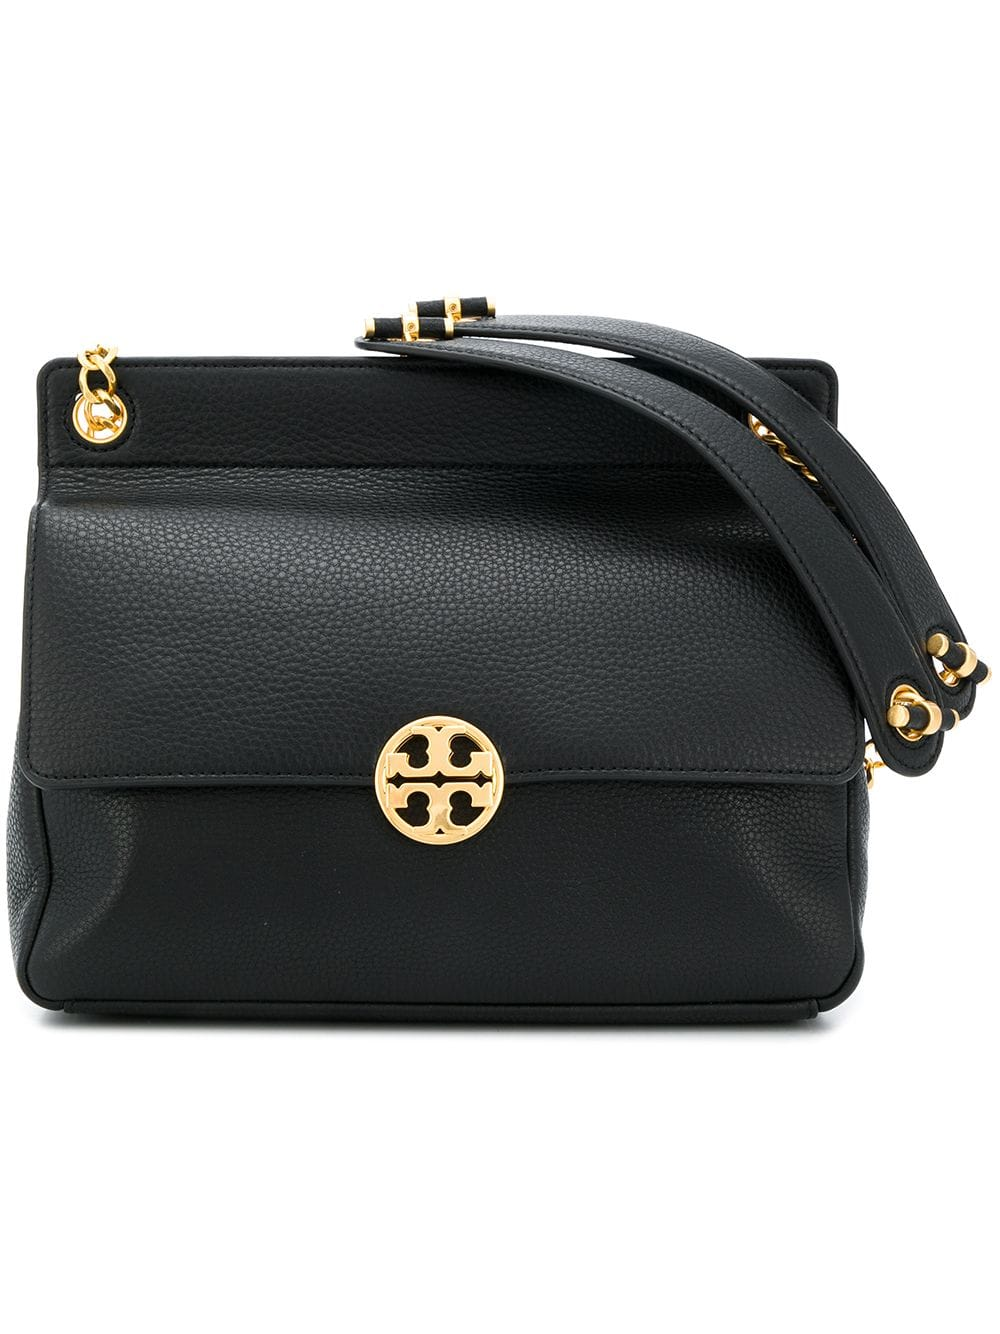 daeebe49771 SISBROW - Firsthand Original Branded Bags with Lowest Price Ever!!